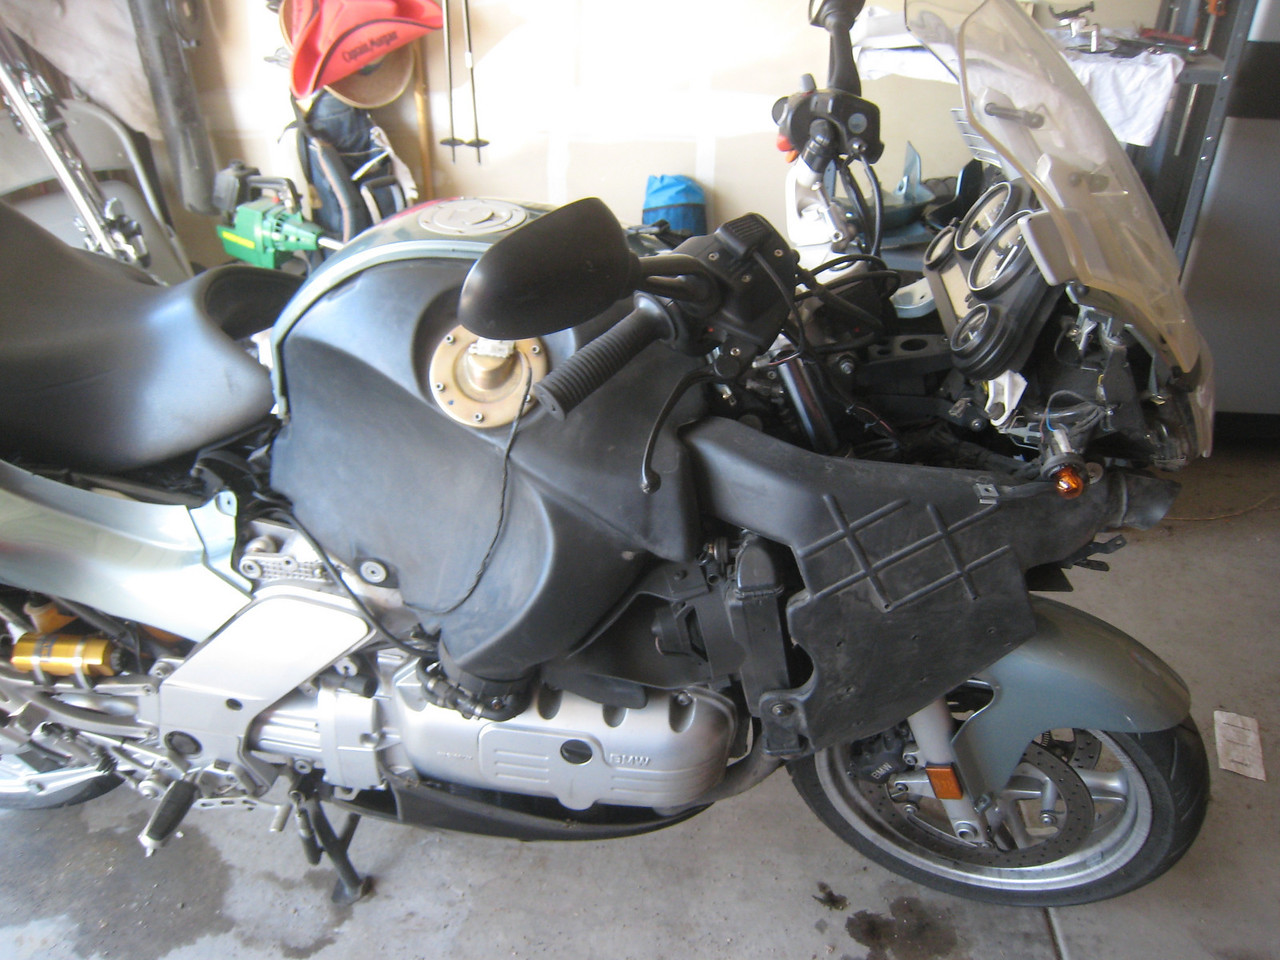 First things, first.  I strip the plastic off the bike and remove the Gadget-Guy GPS mount.